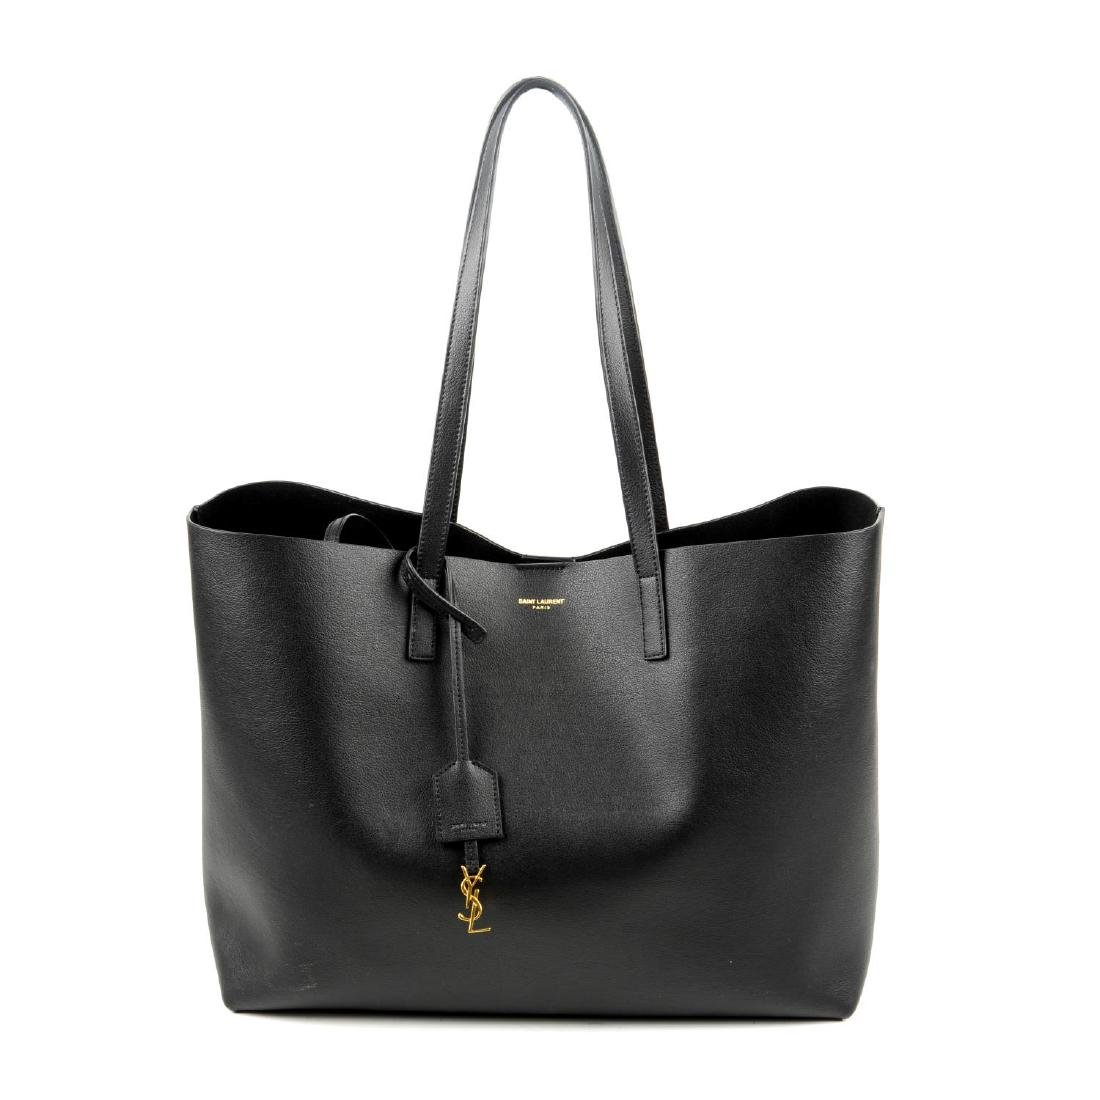 SAINT LAURENT - a leather Shopper handbag. Designed